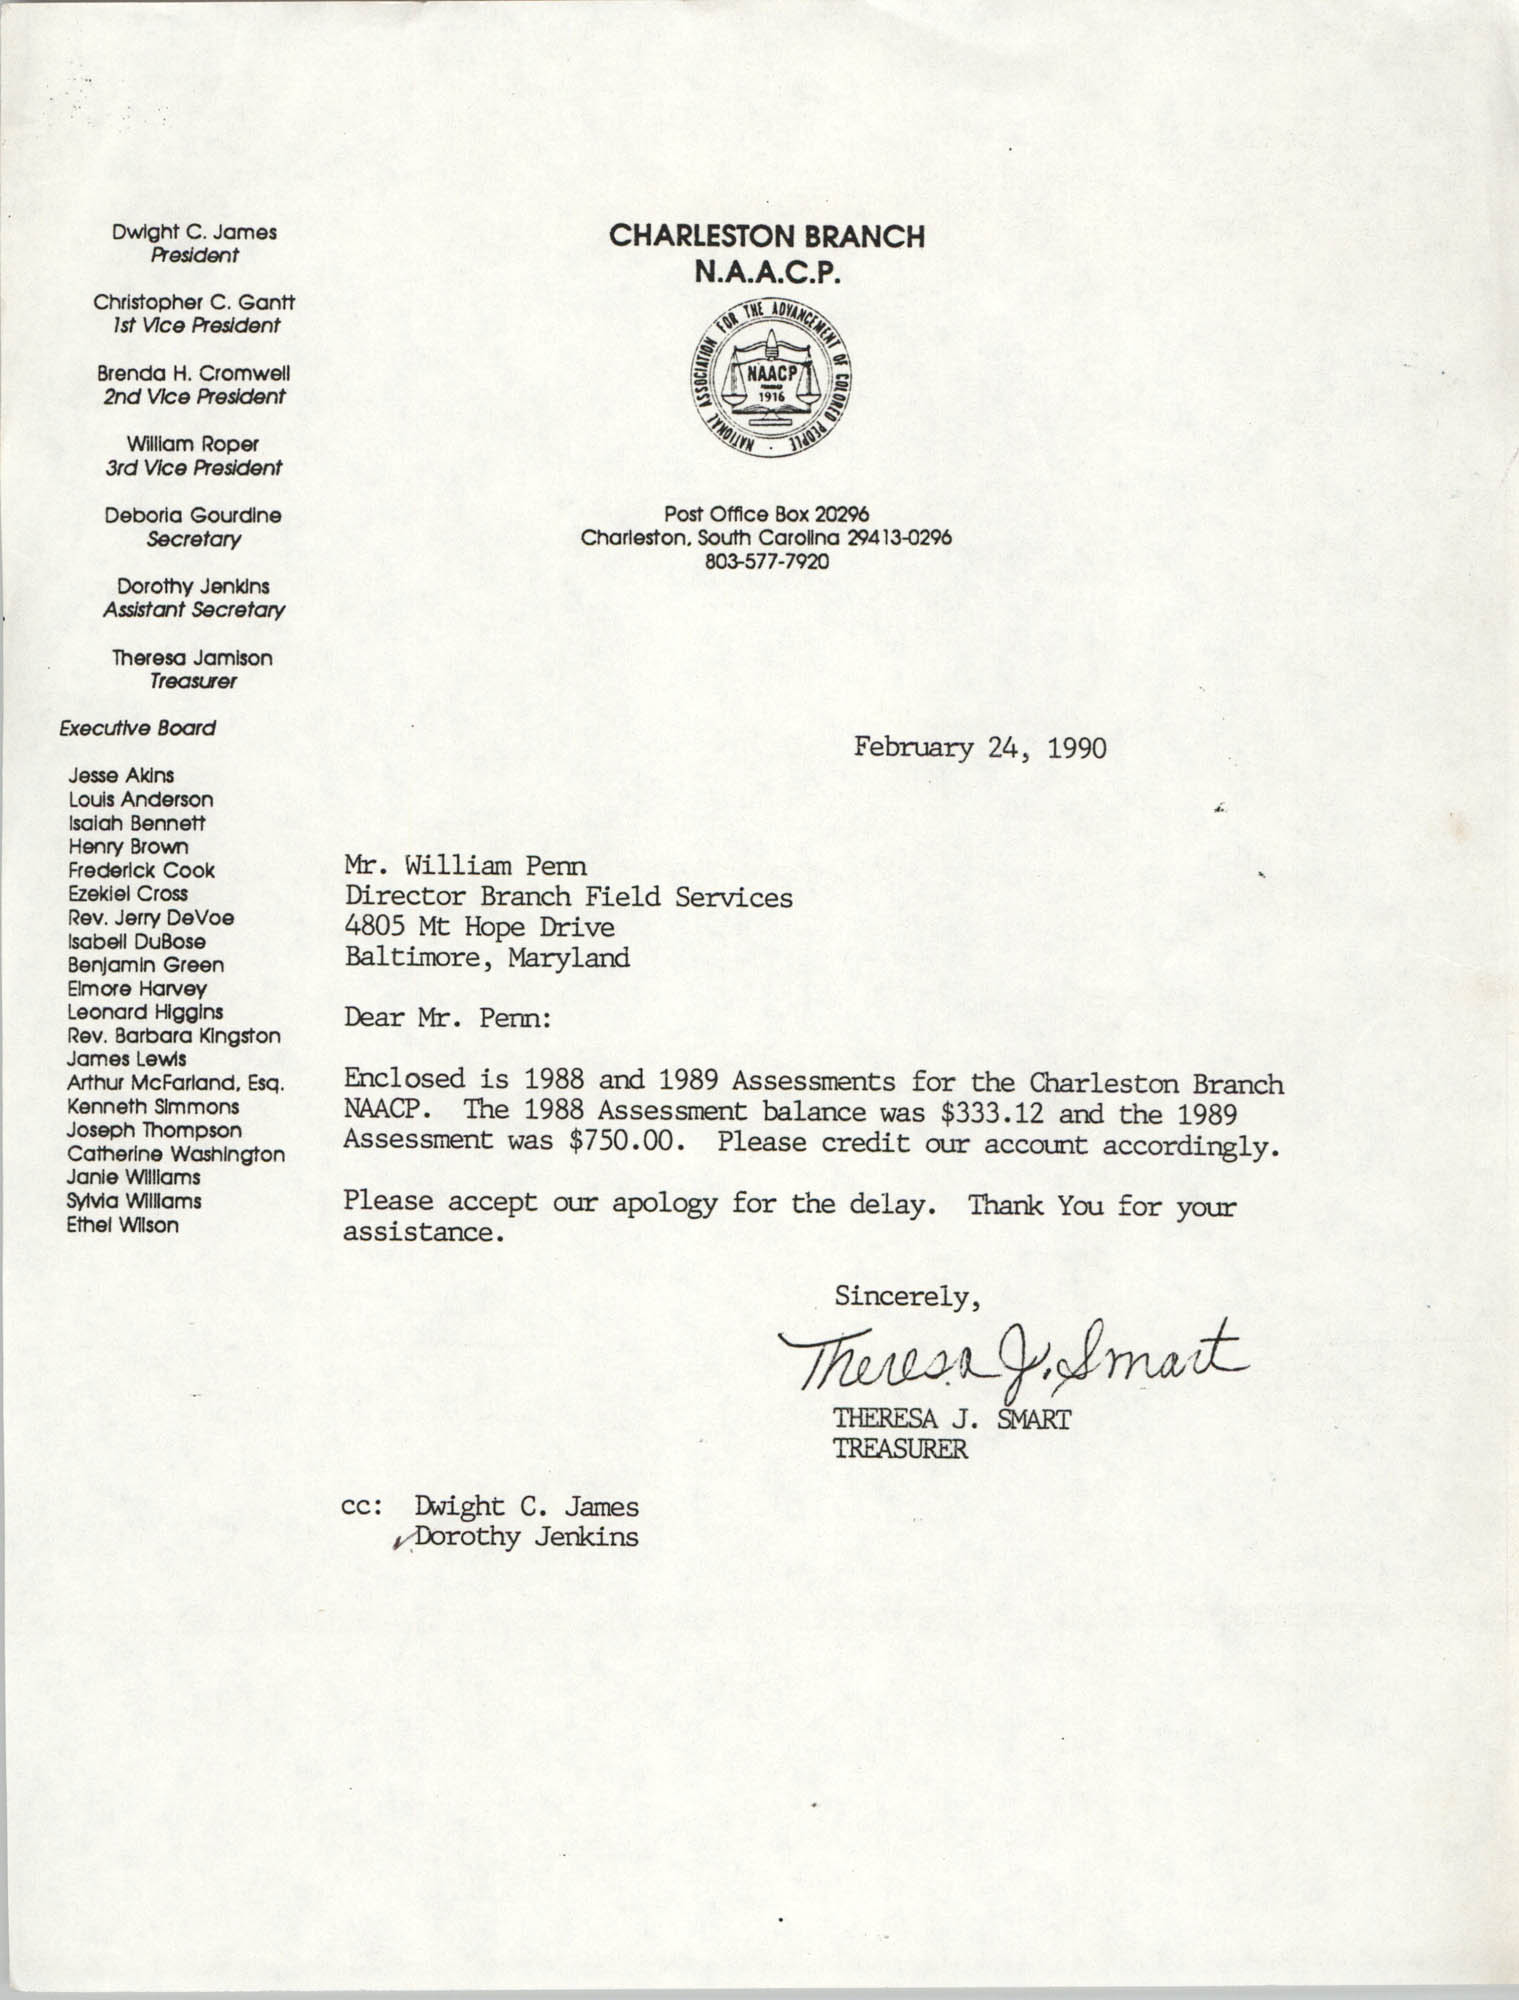 Letter from Theresa J. Smart to William Penn, February 24, 1990